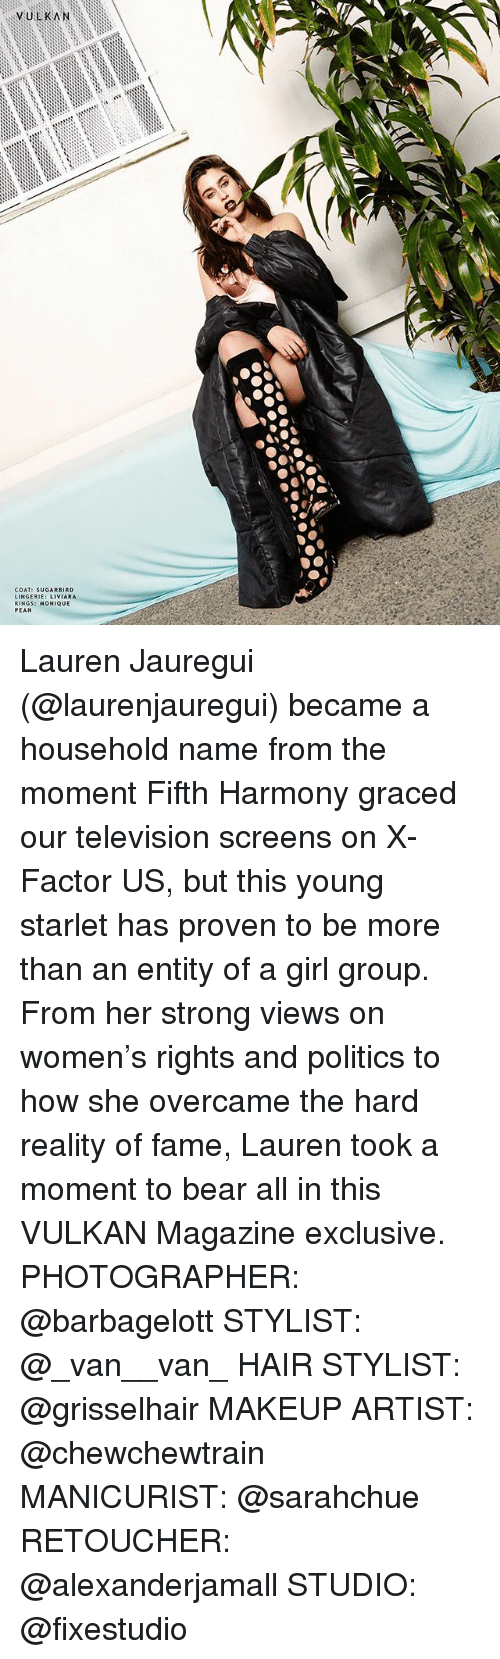 Makeup, Memes, and Politics: y ULKAN  COAT: SUGAR BIRD  NGERIE: LIVIARA  RINGS: MONIQUE  PEAN Lauren Jauregui (@laurenjauregui) became a household name from the moment Fifth Harmony graced our television screens on X-Factor US, but this young starlet has proven to be more than an entity of a girl group. From her strong views on women's rights and politics to how she overcame the hard reality of fame, Lauren took a moment to bear all in this VULKAN Magazine exclusive. PHOTOGRAPHER: @barbagelott STYLIST: @_van__van_ HAIR STYLIST: @grisselhair MAKEUP ARTIST: @chewchewtrain MANICURIST: @sarahchue RETOUCHER: @alexanderjamall STUDIO: @fixestudio